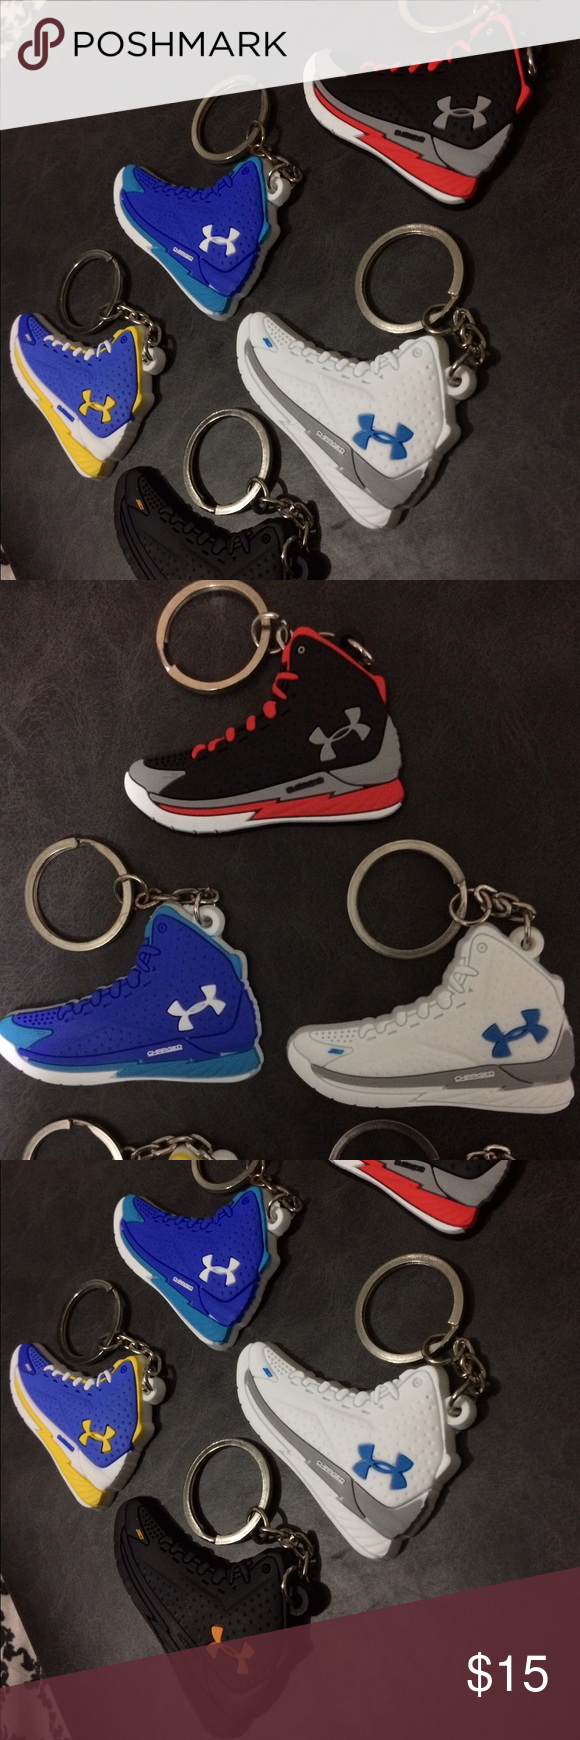 a43c4169144f Steph Curry x Under Armour Sneaker Keychain Newest sneaker keychains out!  Perfect timing for the holiday season! Choose from either color way or  collect all ...